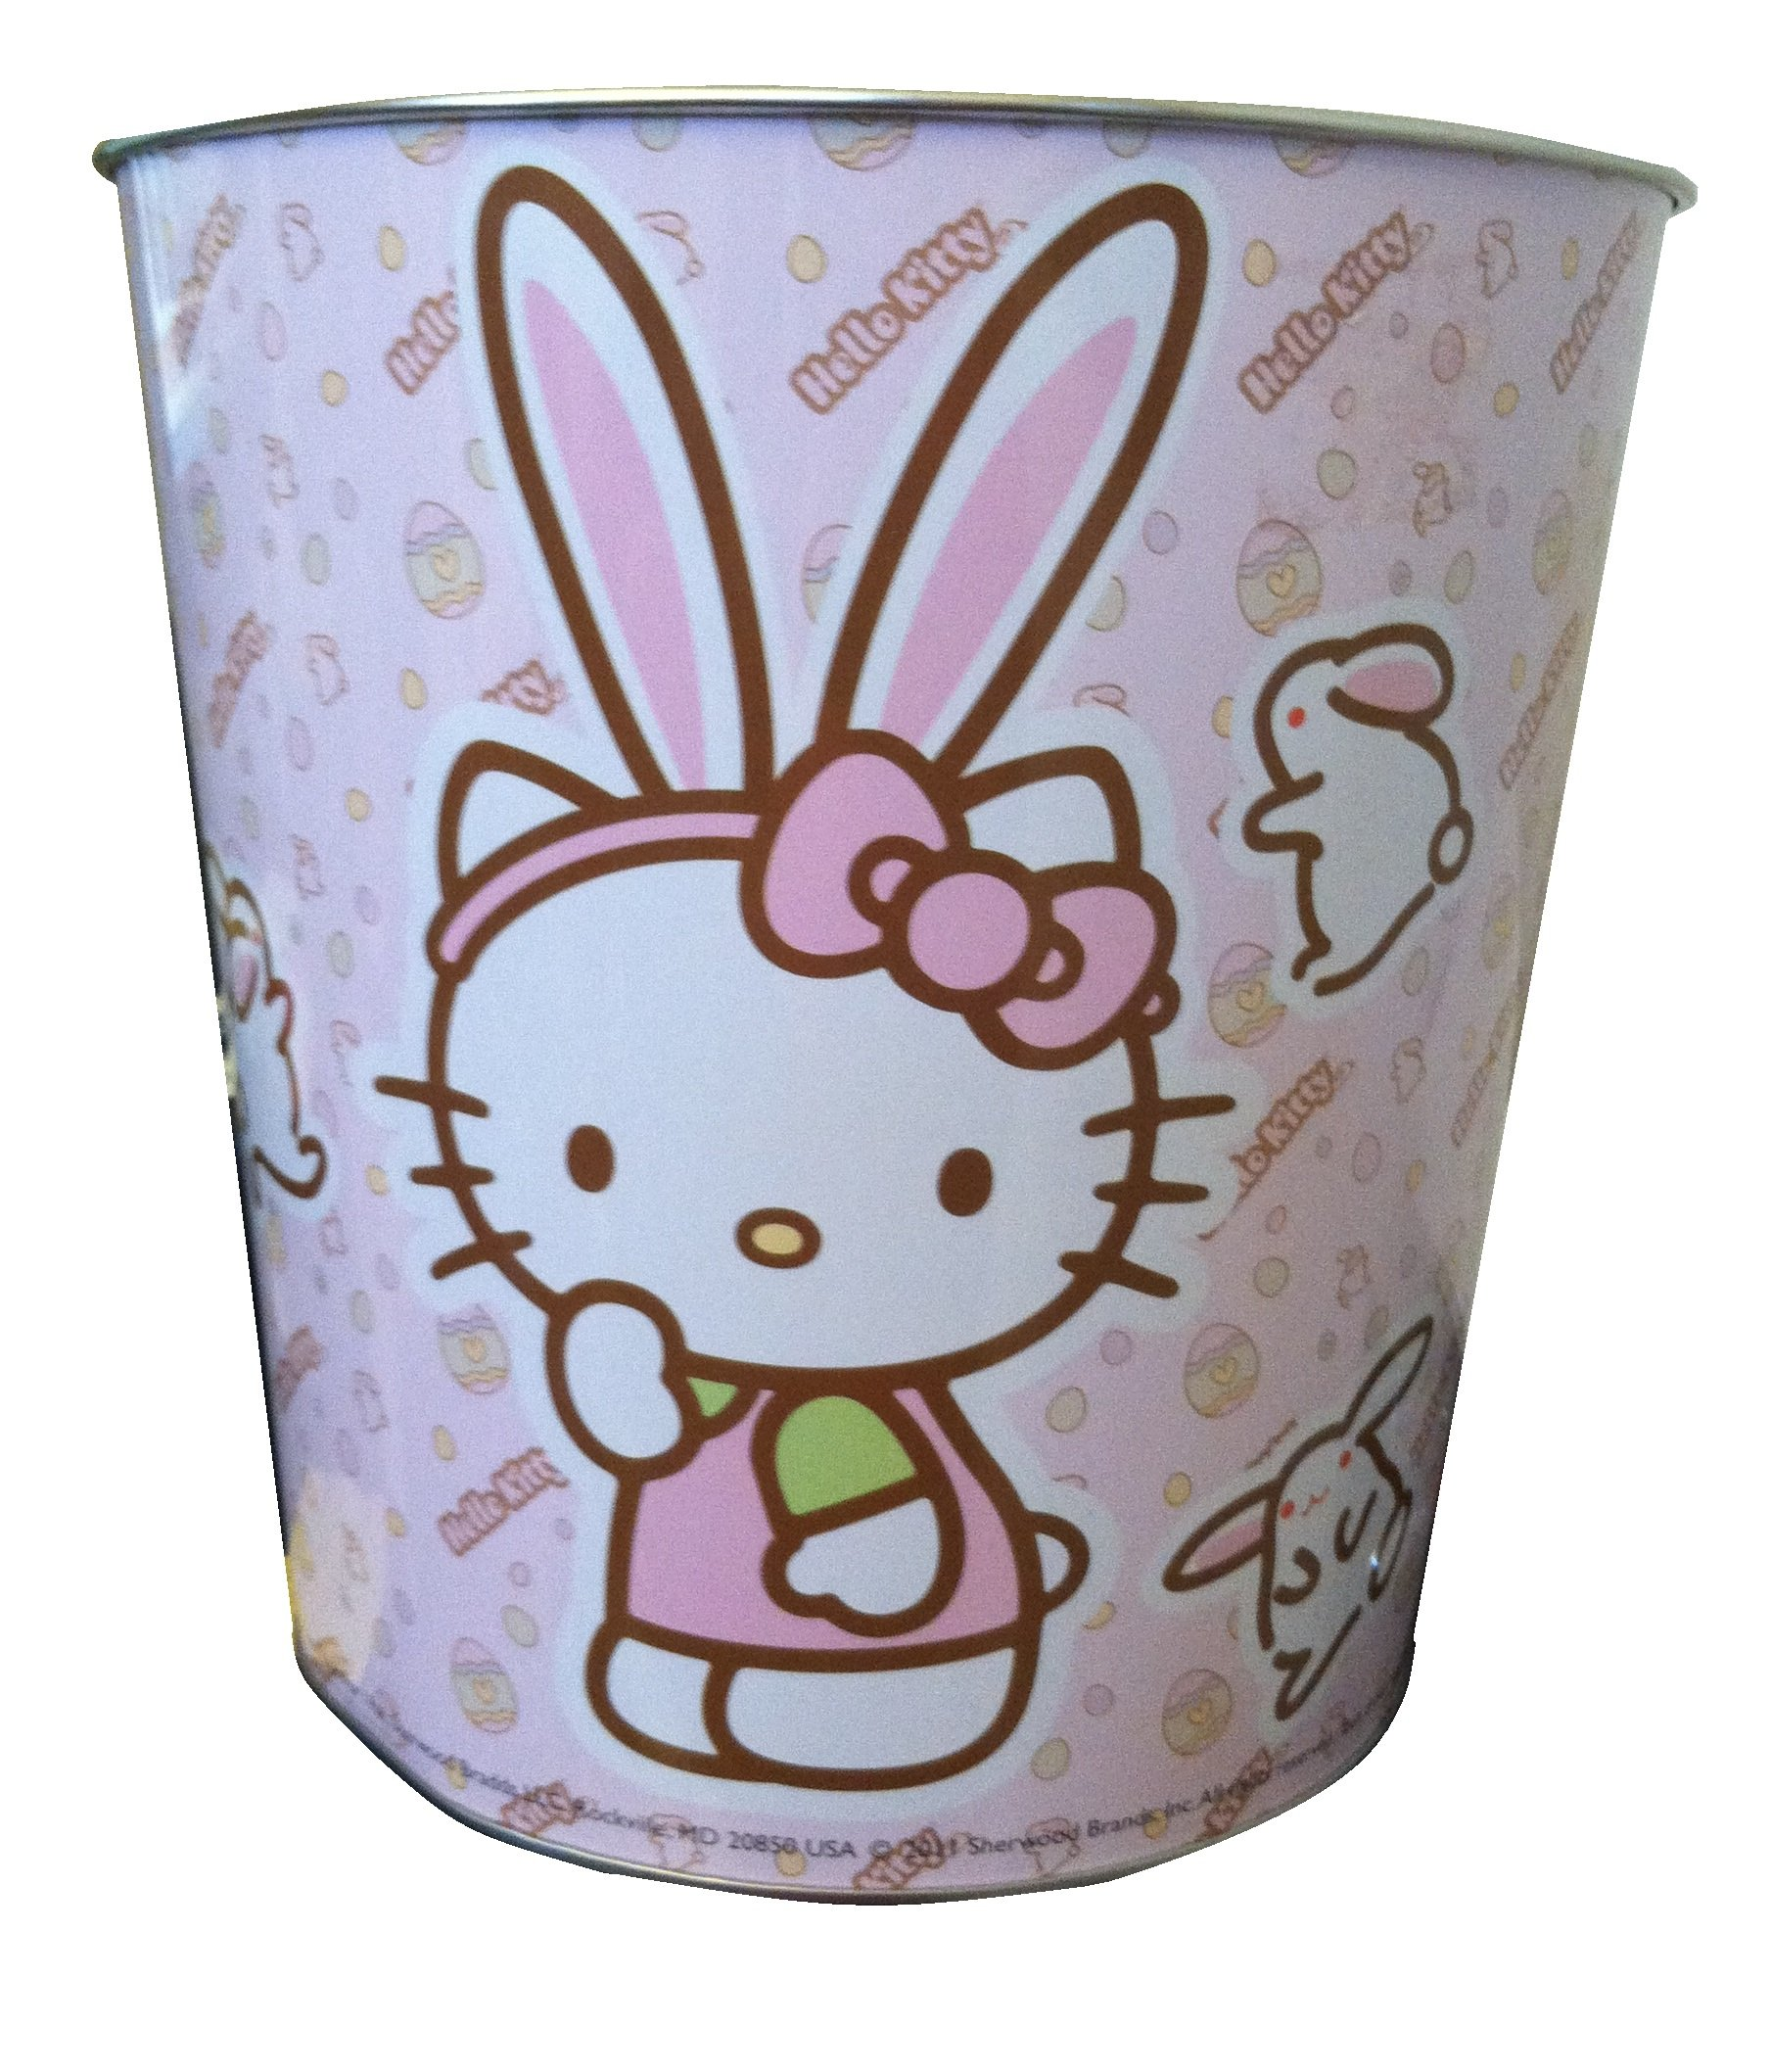 a4bb3328ef96 Get Quotations · HELLO KITTY Metal Garbage Can ~ Waste Basket